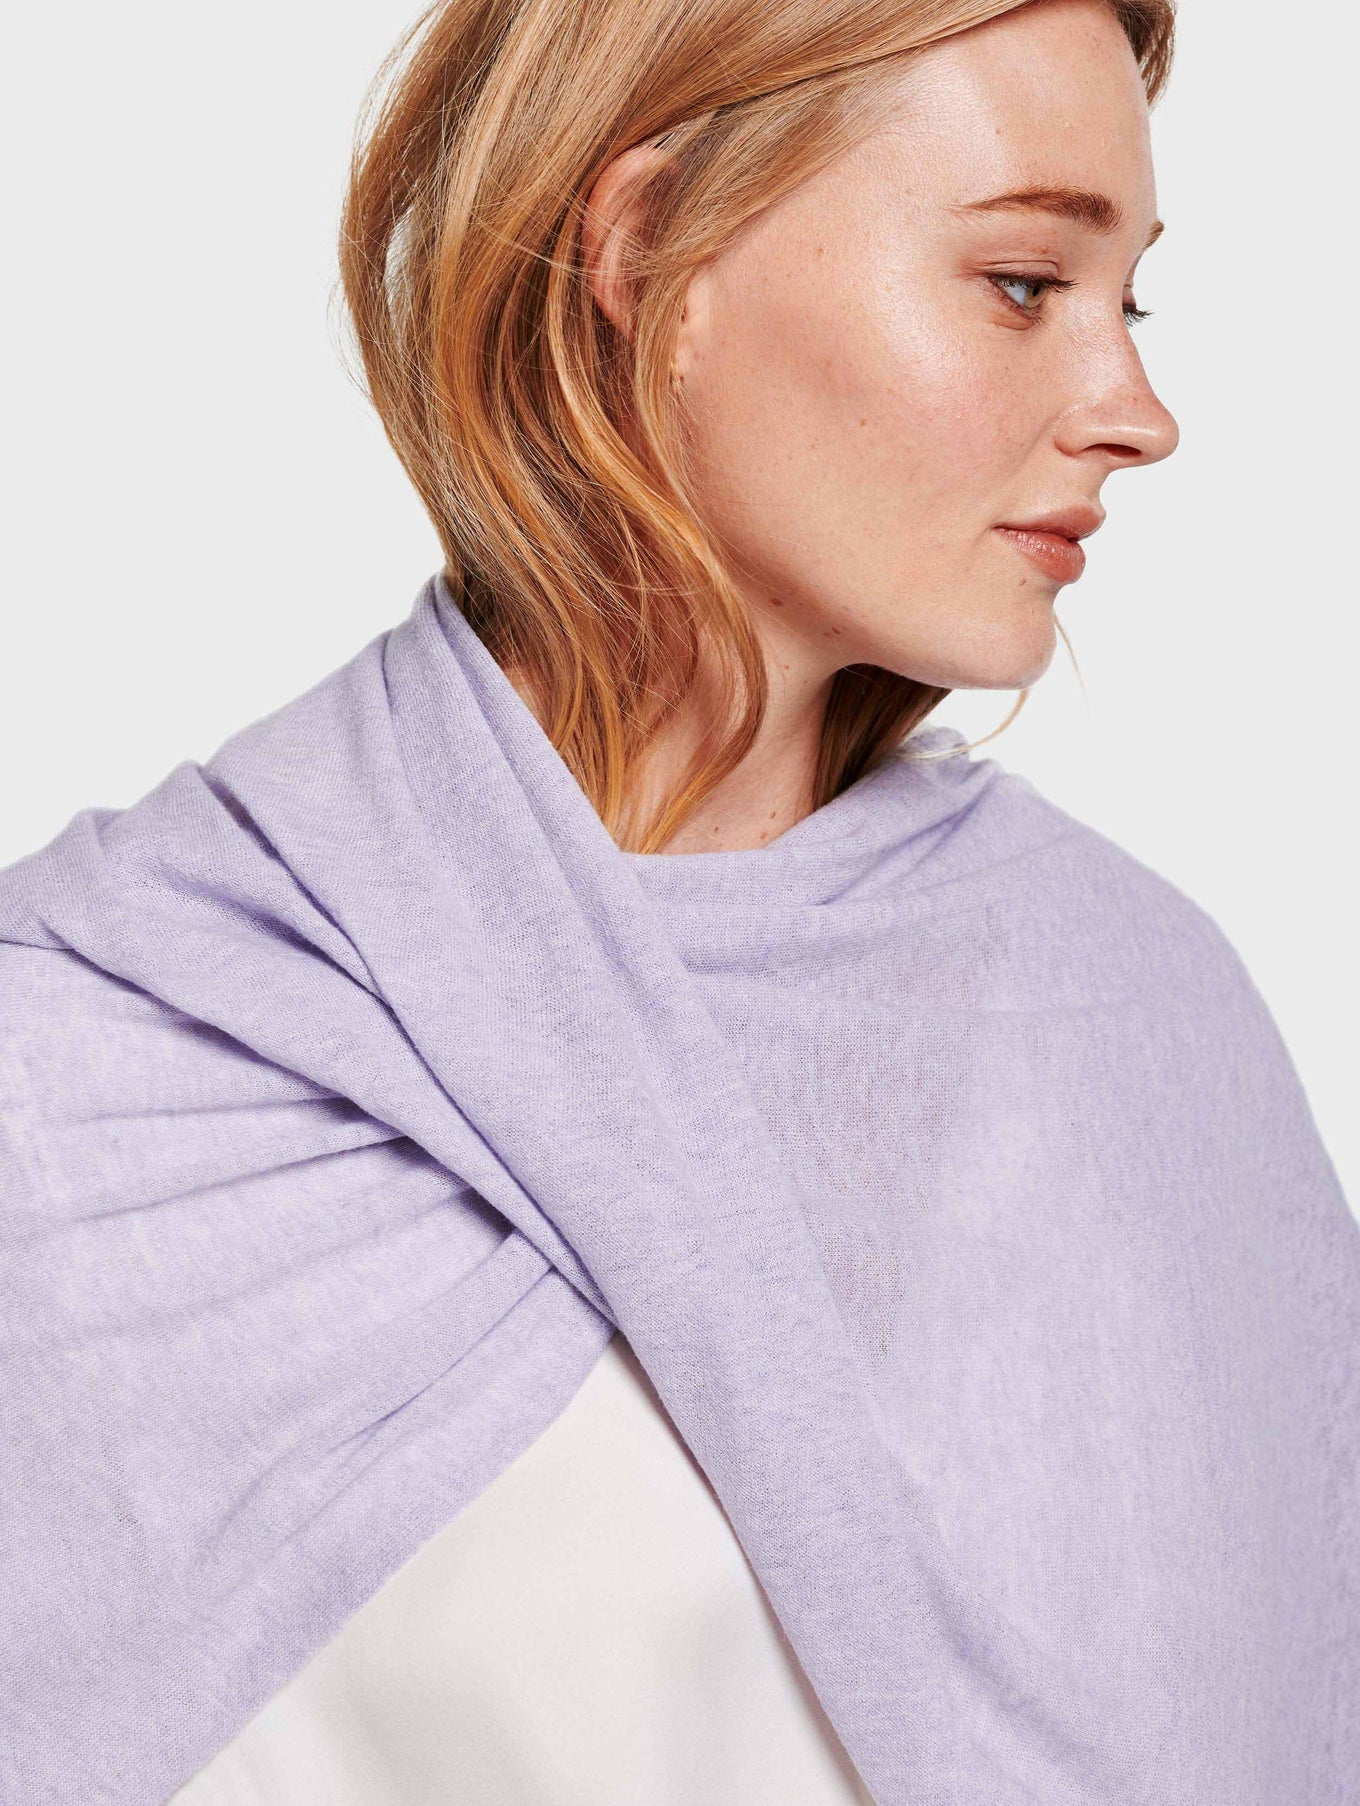 Mini Linen Travel Wrap - Lilac Mist - Image 2